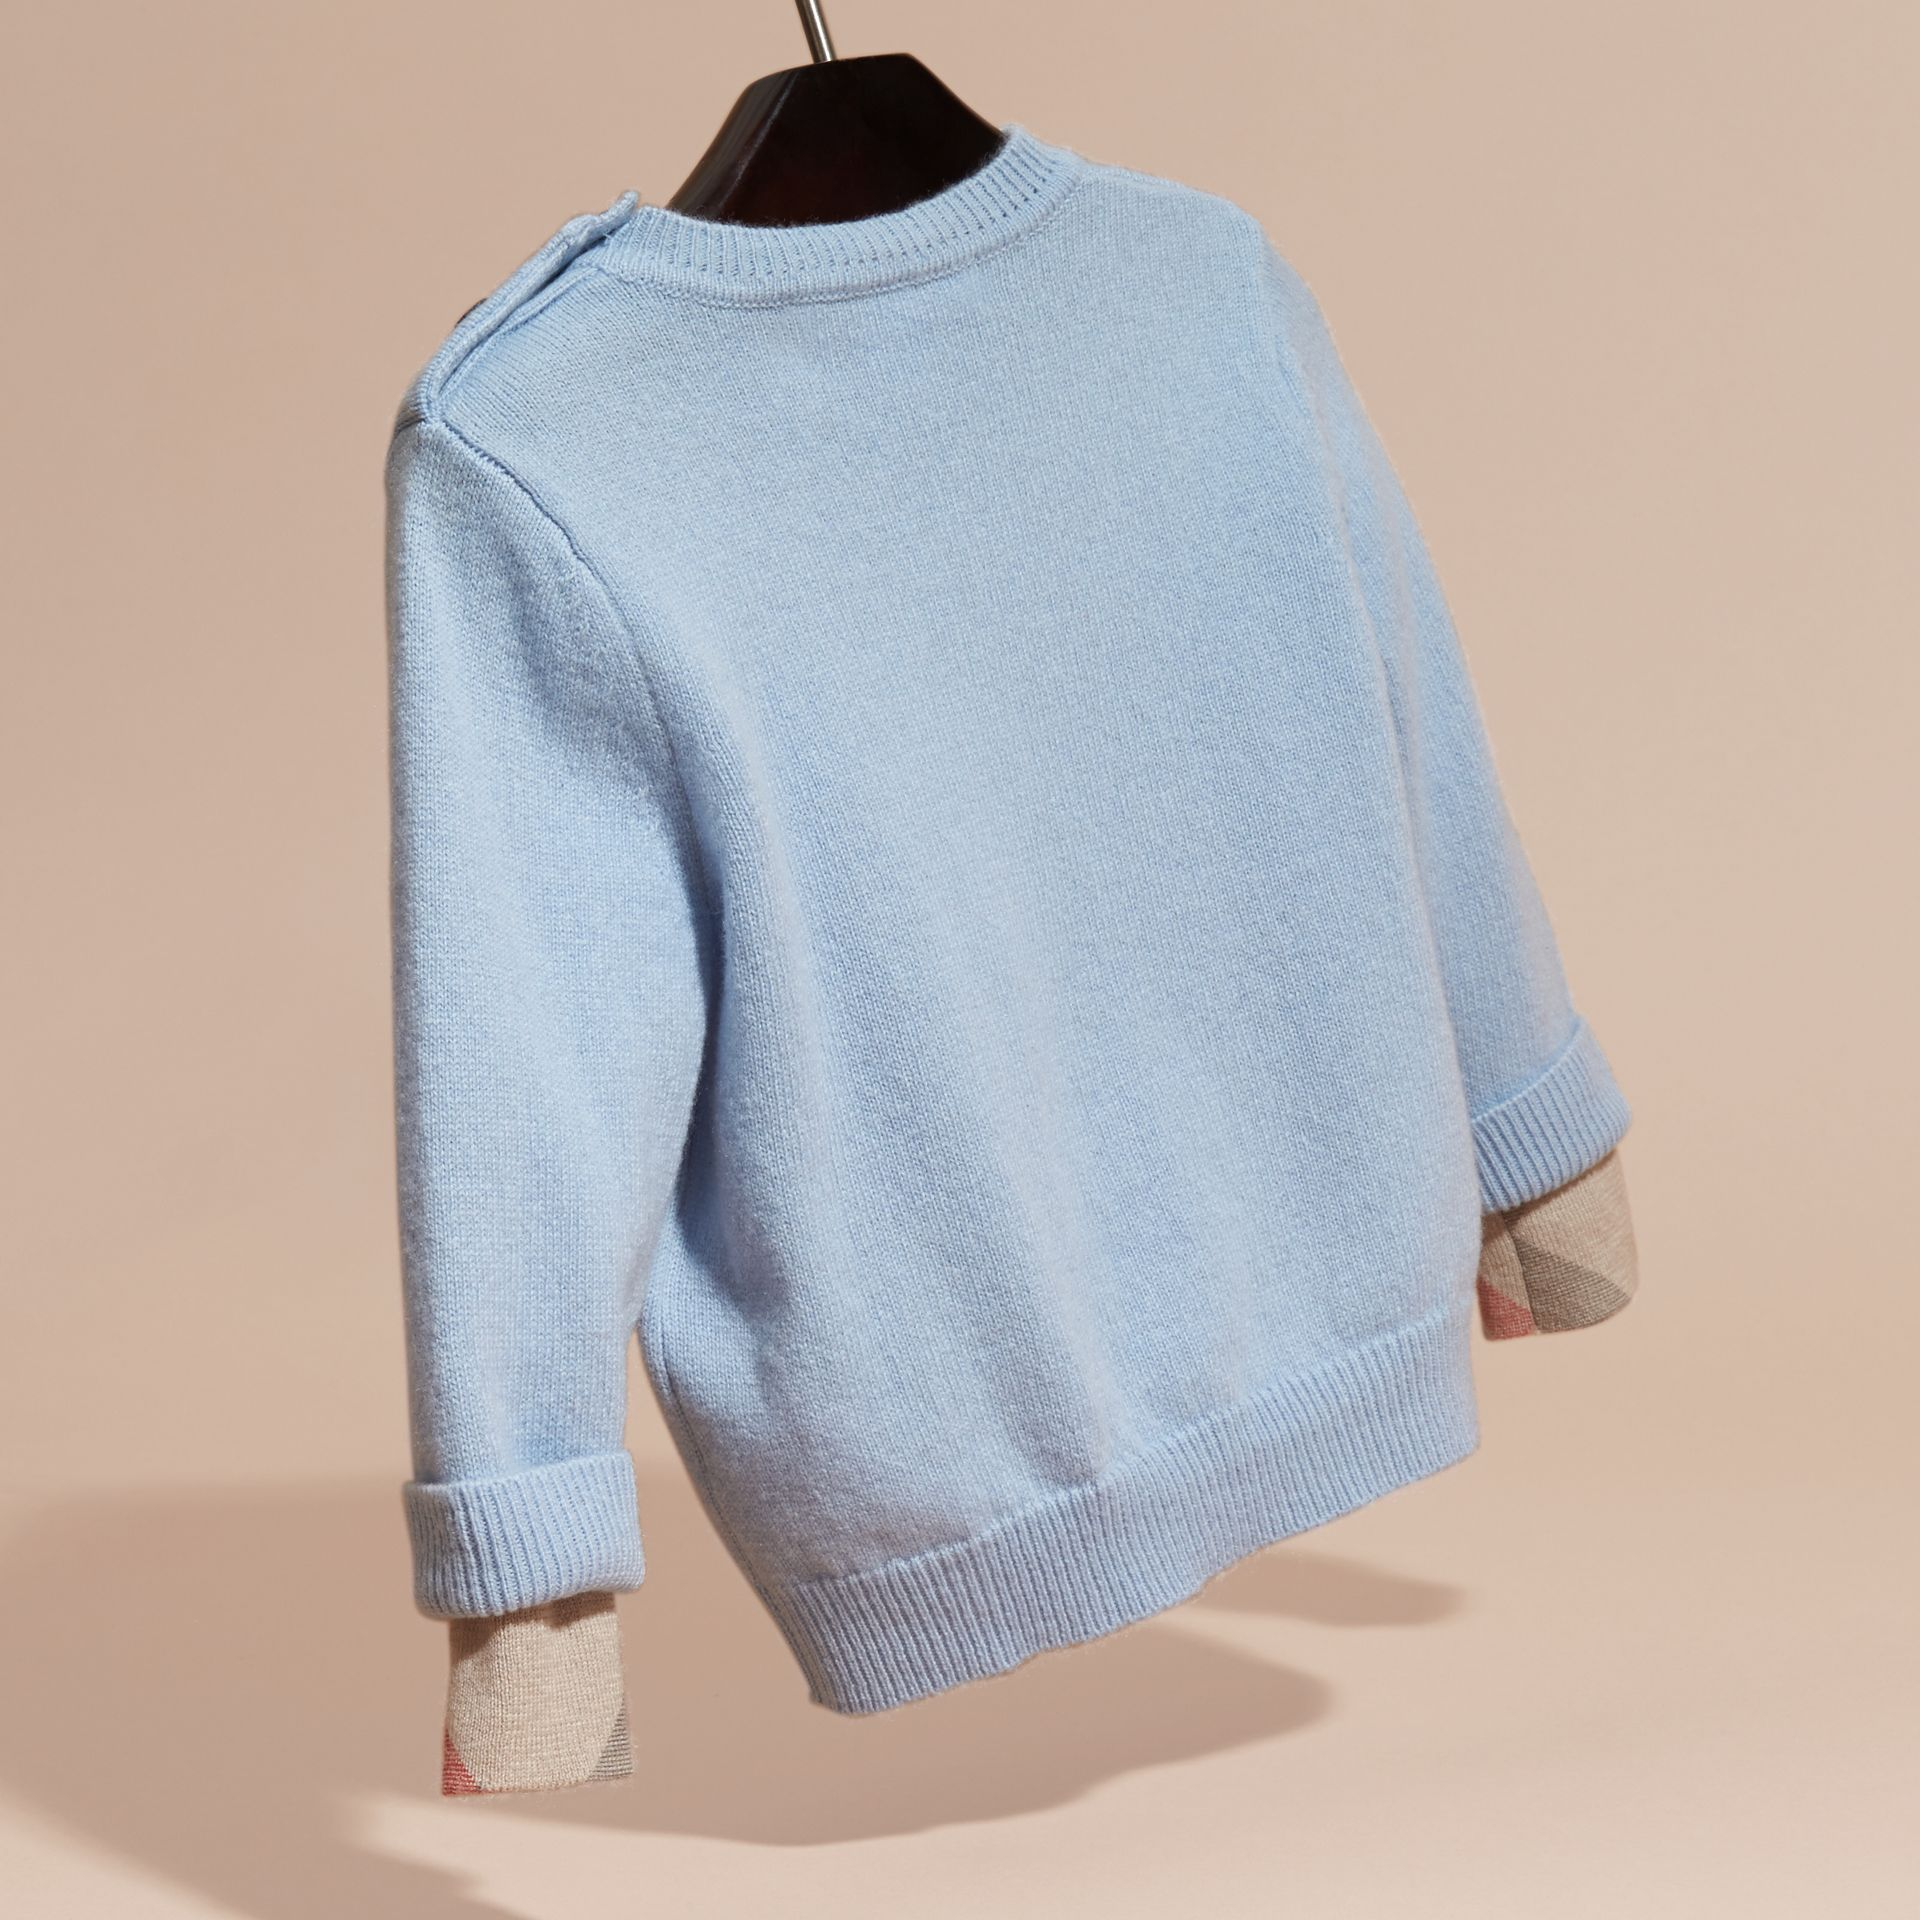 Pale cornflower blue Check Detail Cashmere Sweater Pale Cornflower Blue - gallery image 4